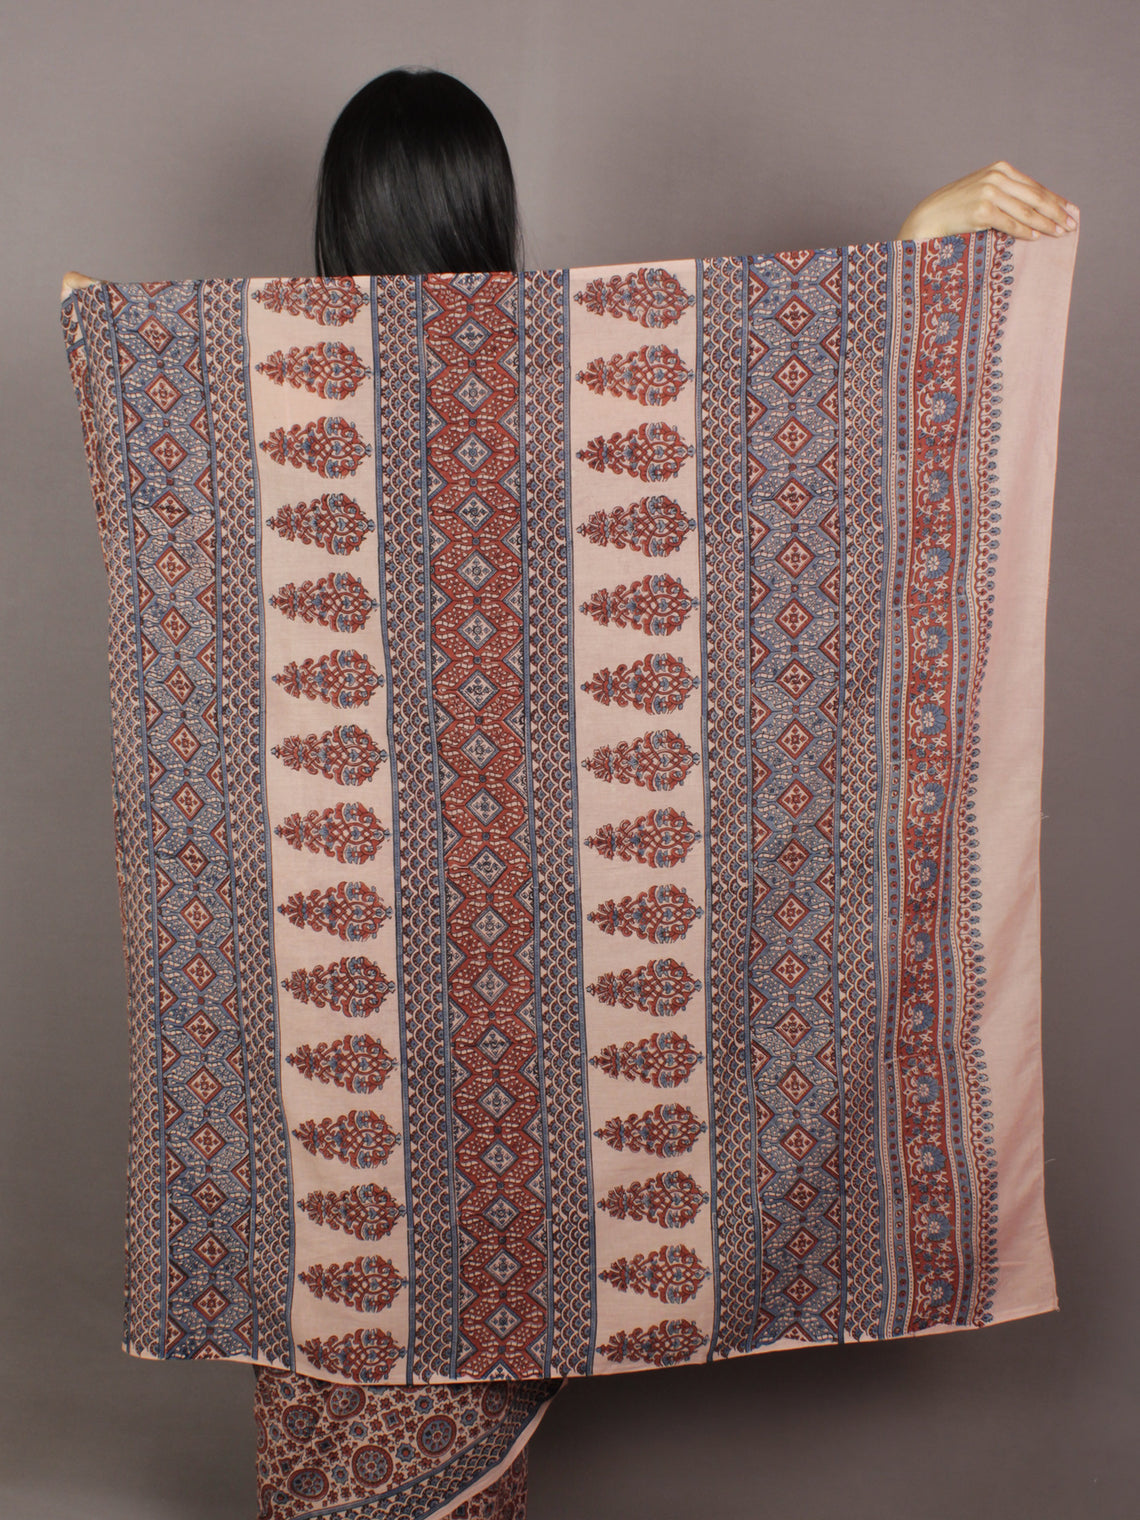 Ivory Maroon Steel Blue Mughal Nakashi Ajrakh Hand Block Printed in Natural Vegetable Colors Cotton Mul Saree - S031701139